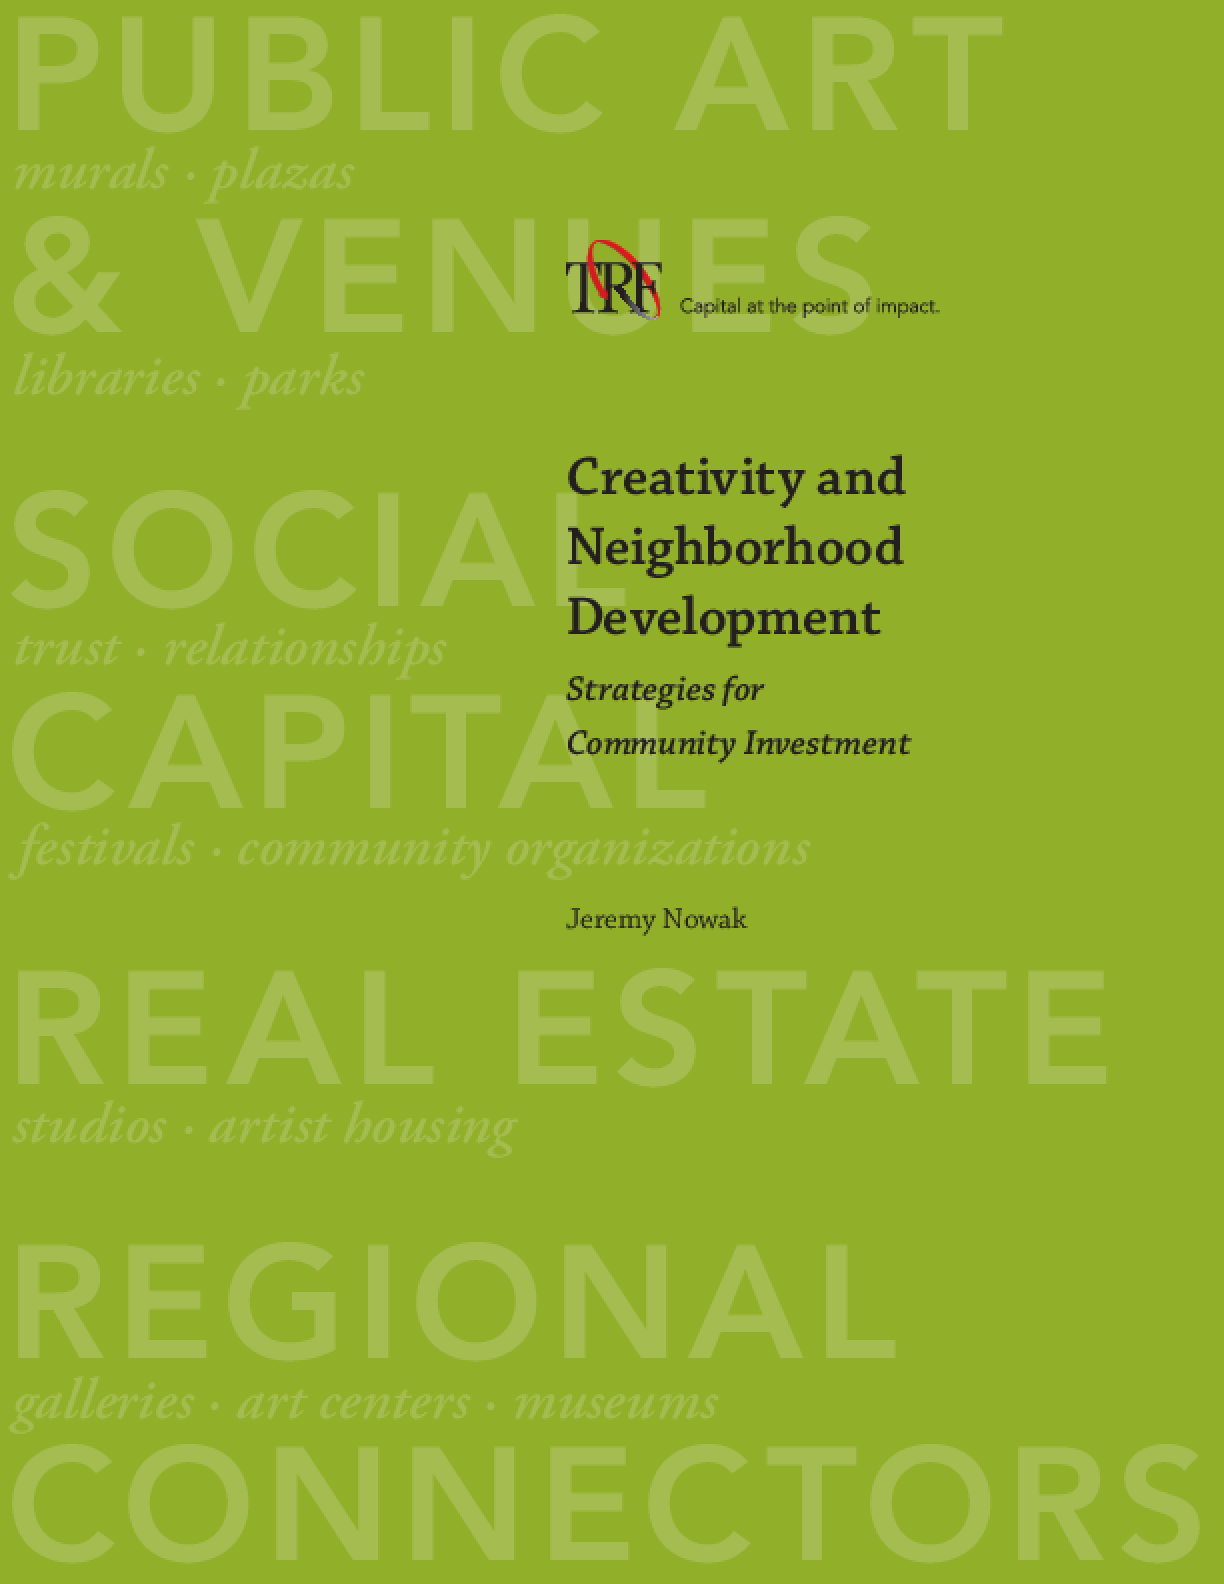 Creativity and Neighborhood Development: Strategies for Community Investment